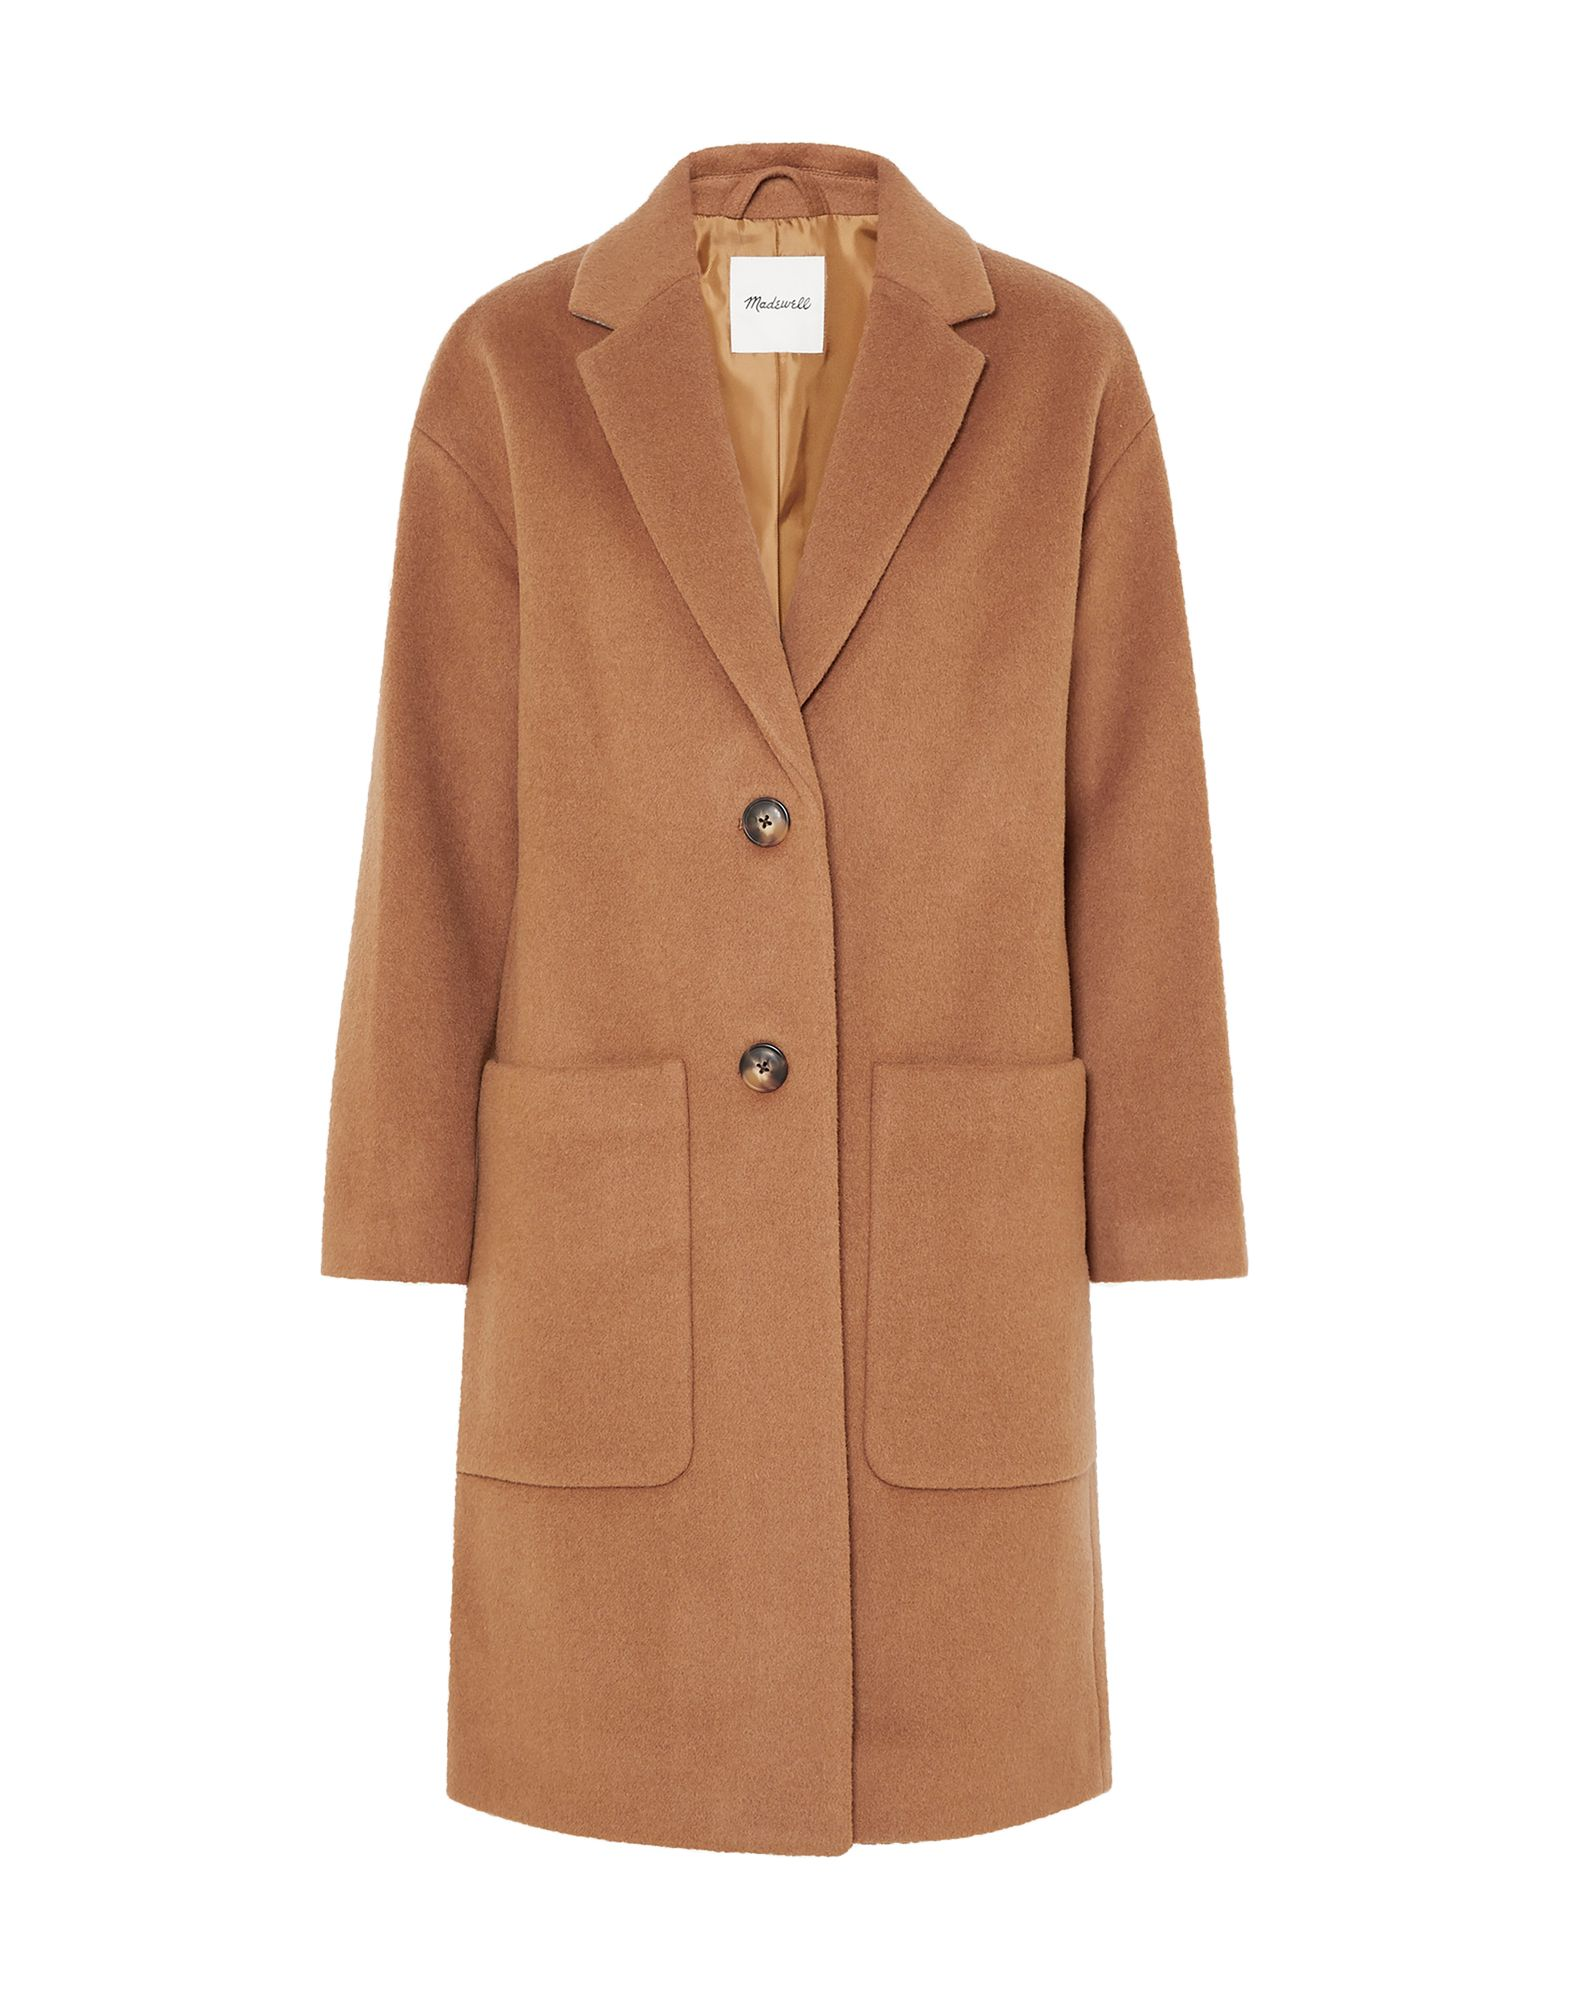 MADEWELL Coats. baize, no appliqués, basic solid color, single-breasted, button closing, lapel collar, multipockets, long sleeves, fully lined. 80% Wool, 20% Polyamide, Viscose